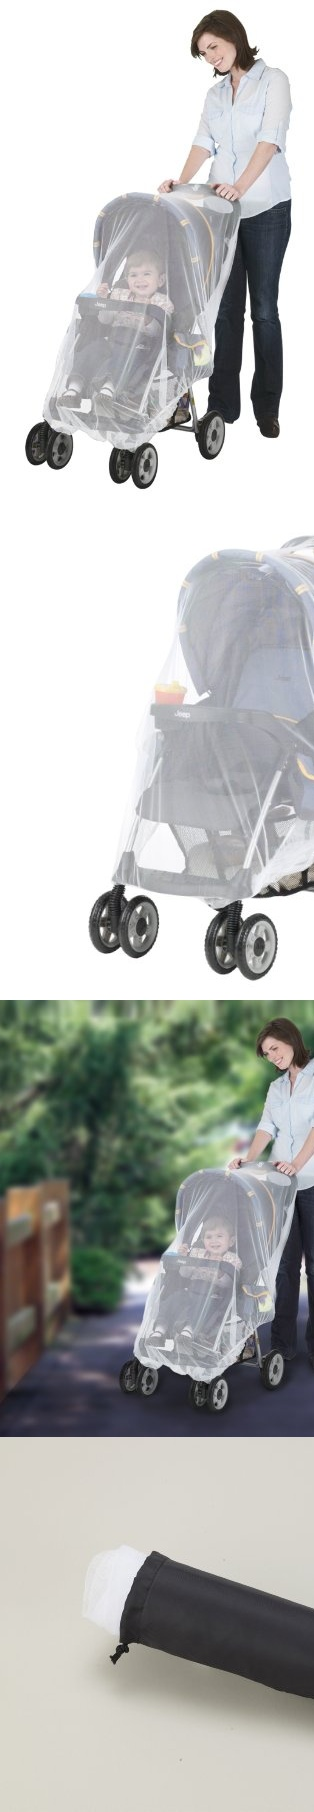 Jeep Netting for Stroller or Infant Carrier - Jeep Stroller/Carrier NettingHelps protect child from mosquitoes & other insects, fits most standard sized playpens. Fits most strollers, infant carriers, carriages & bassinets. - Insect Netting - Baby$3.95